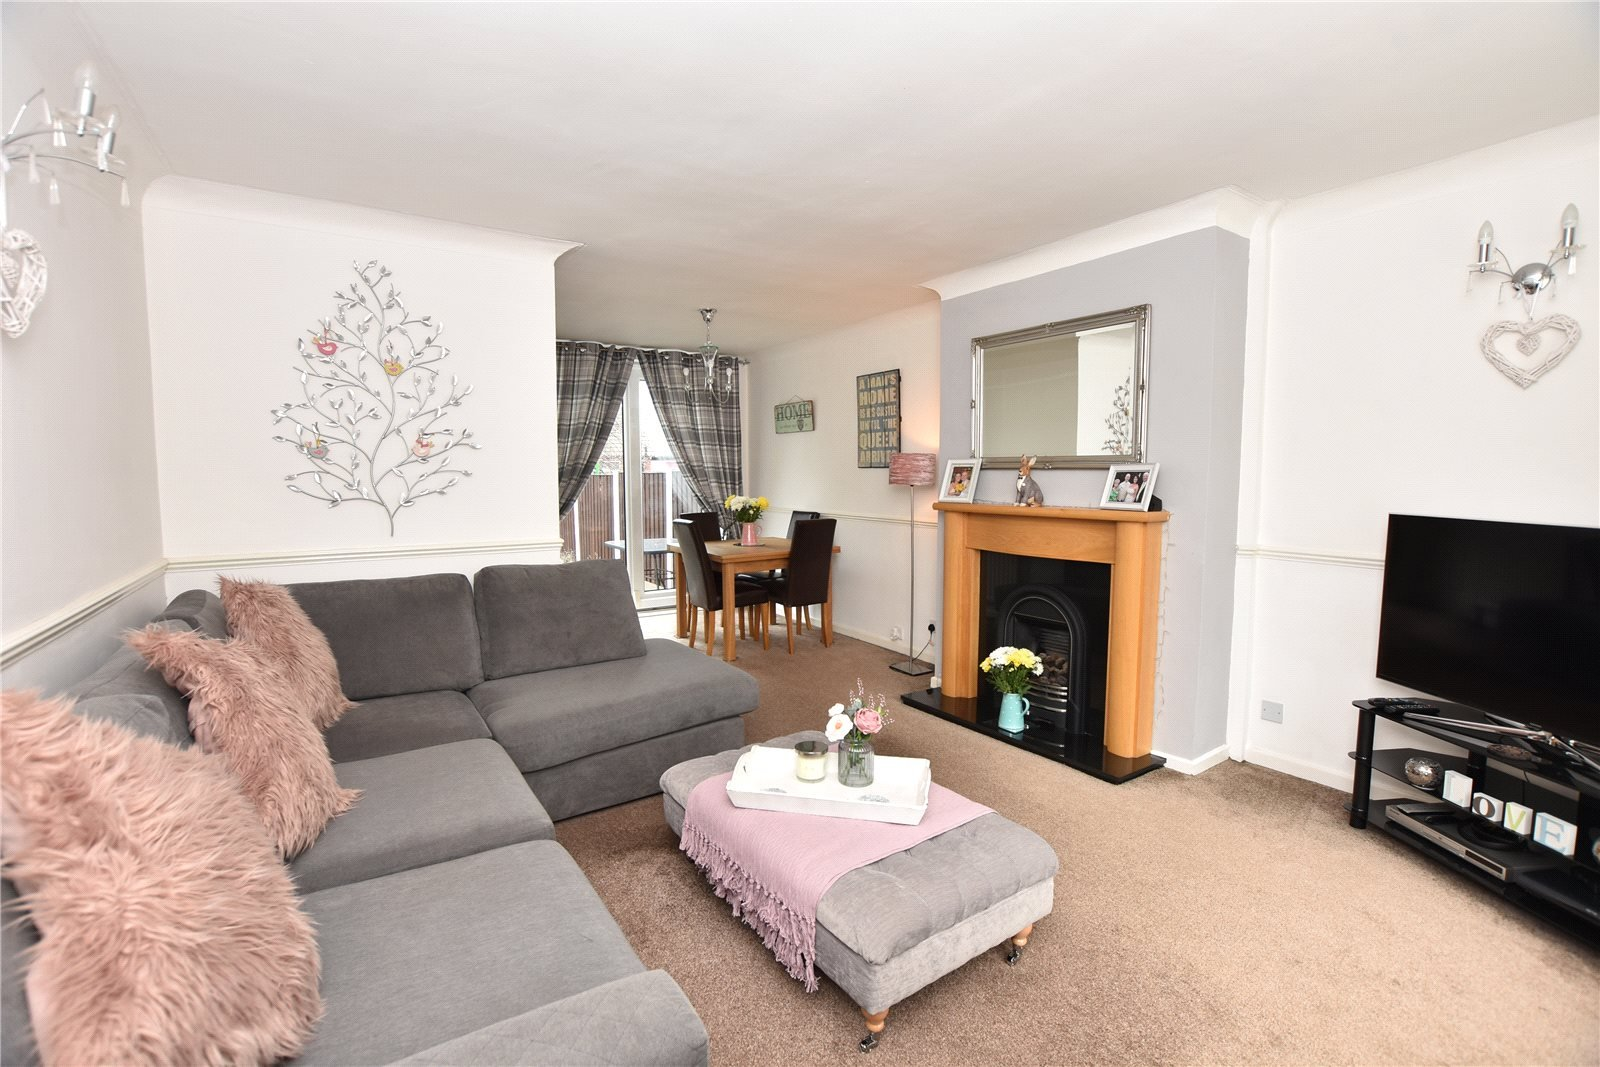 property for sale in Beeston, Interior reception room, beautiful space